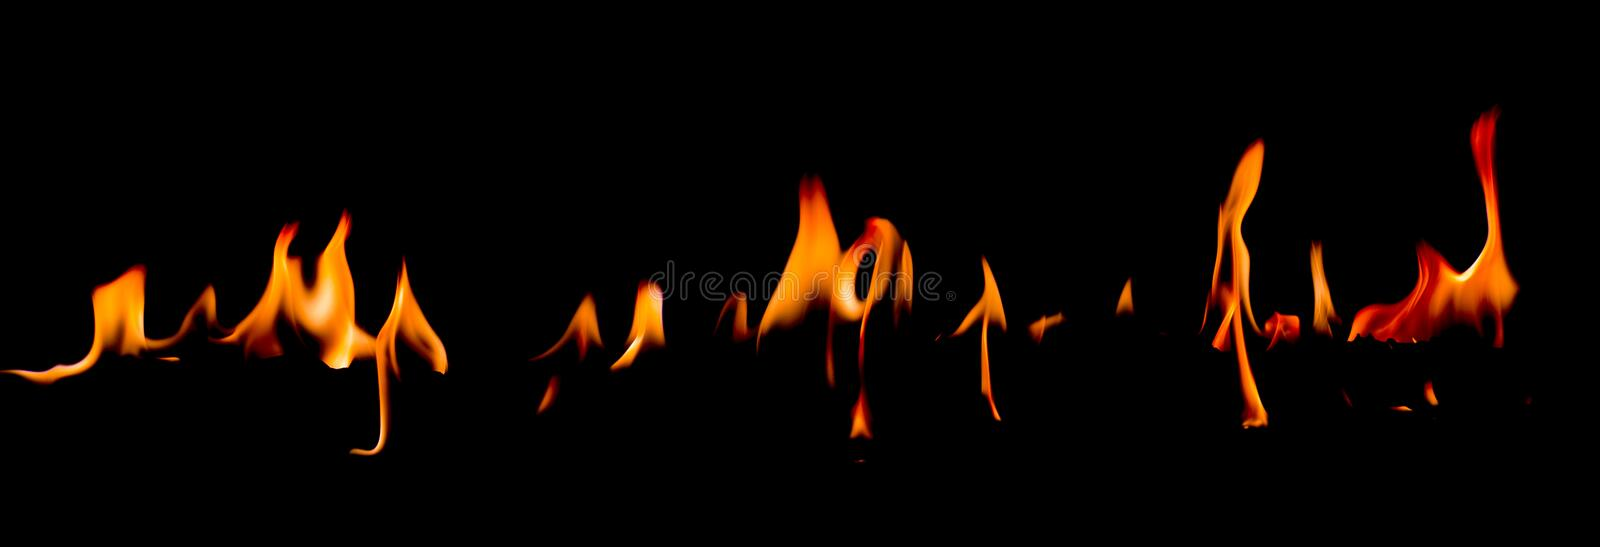 Fire flames on Abstract art black background, Burning red hot sparks rise. Fiery orange glowing flying particles royalty free stock images